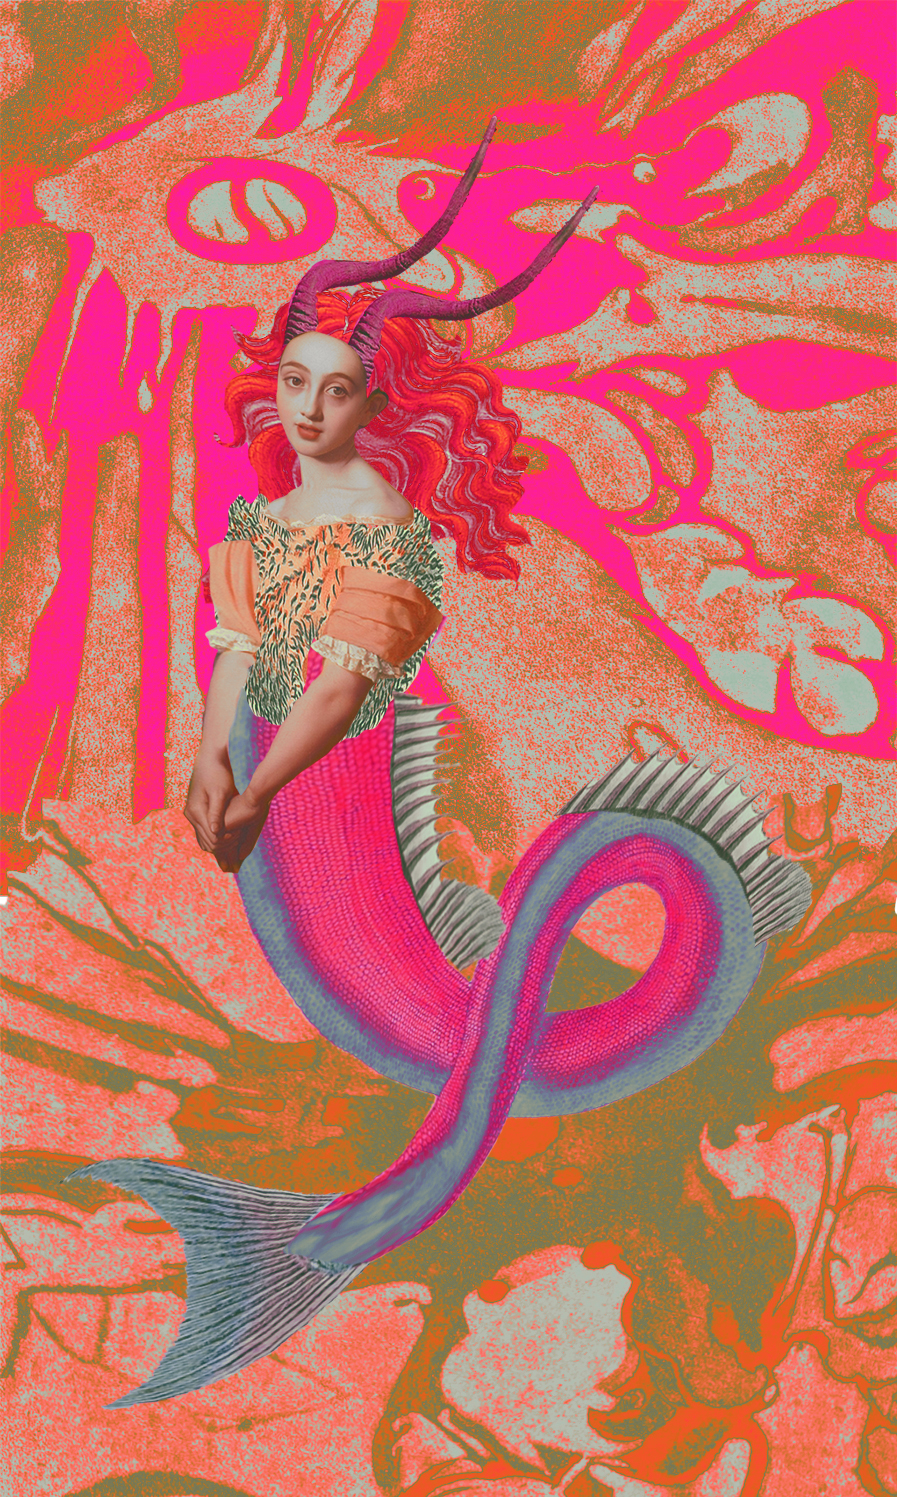 Capricorn_print of digital collage_2018.jpg